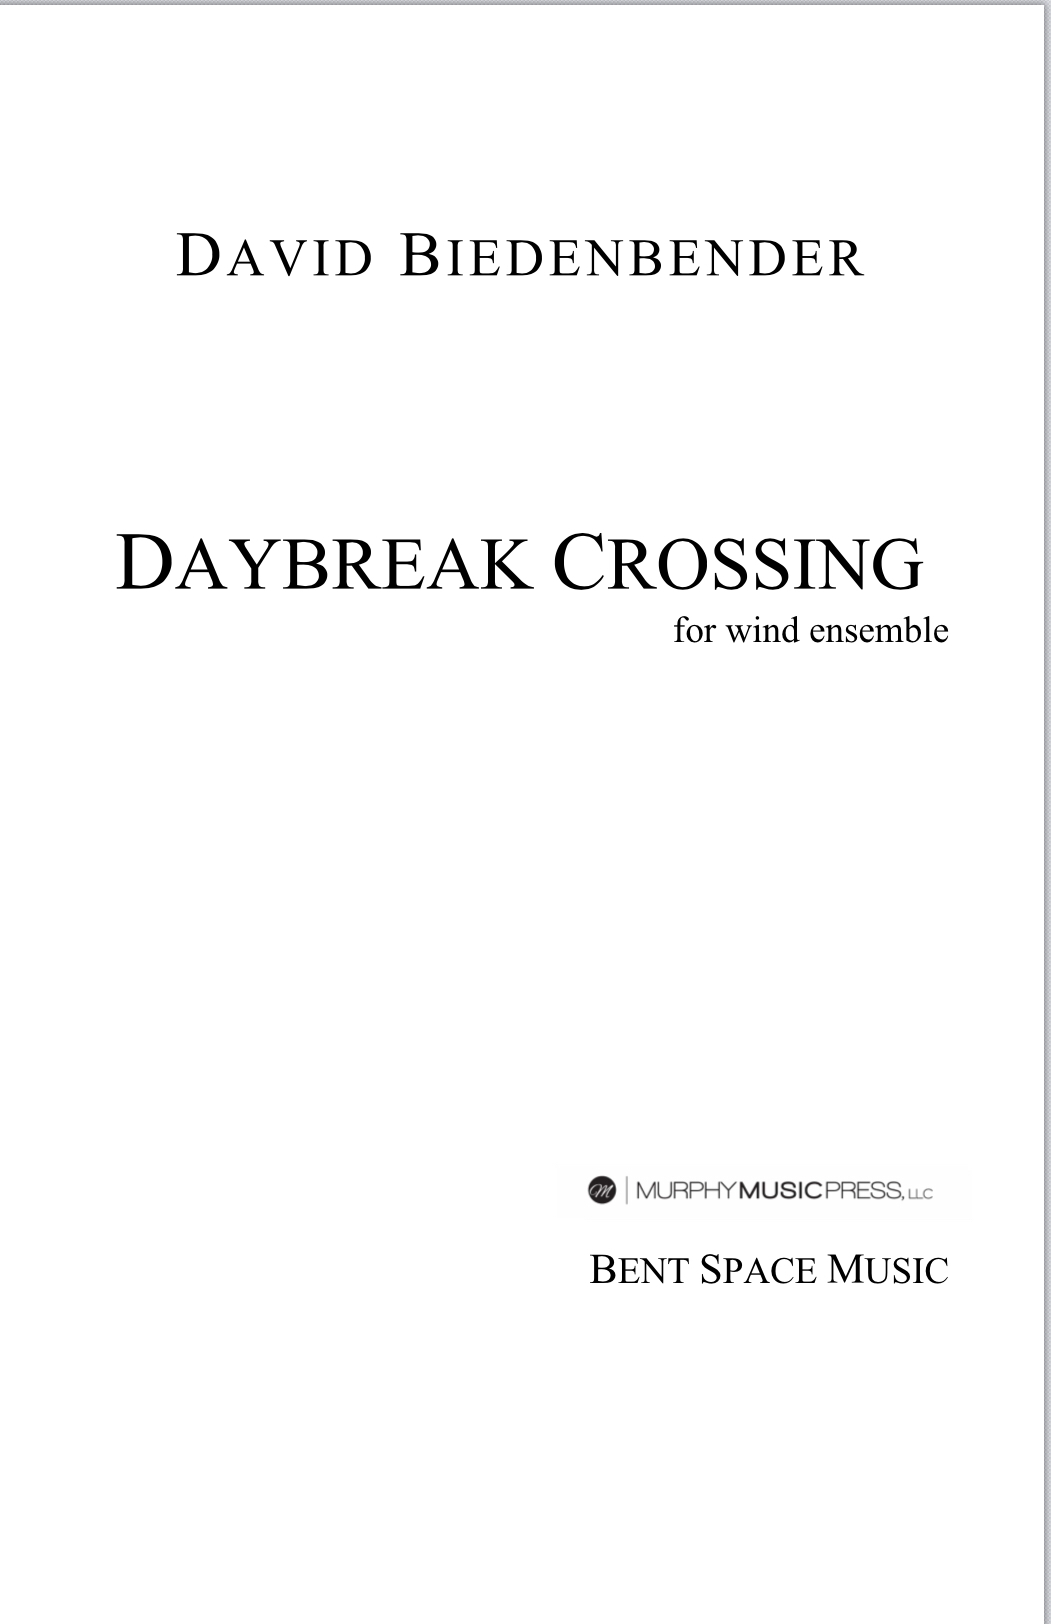 Daybreak Crossing by David Biedenbender